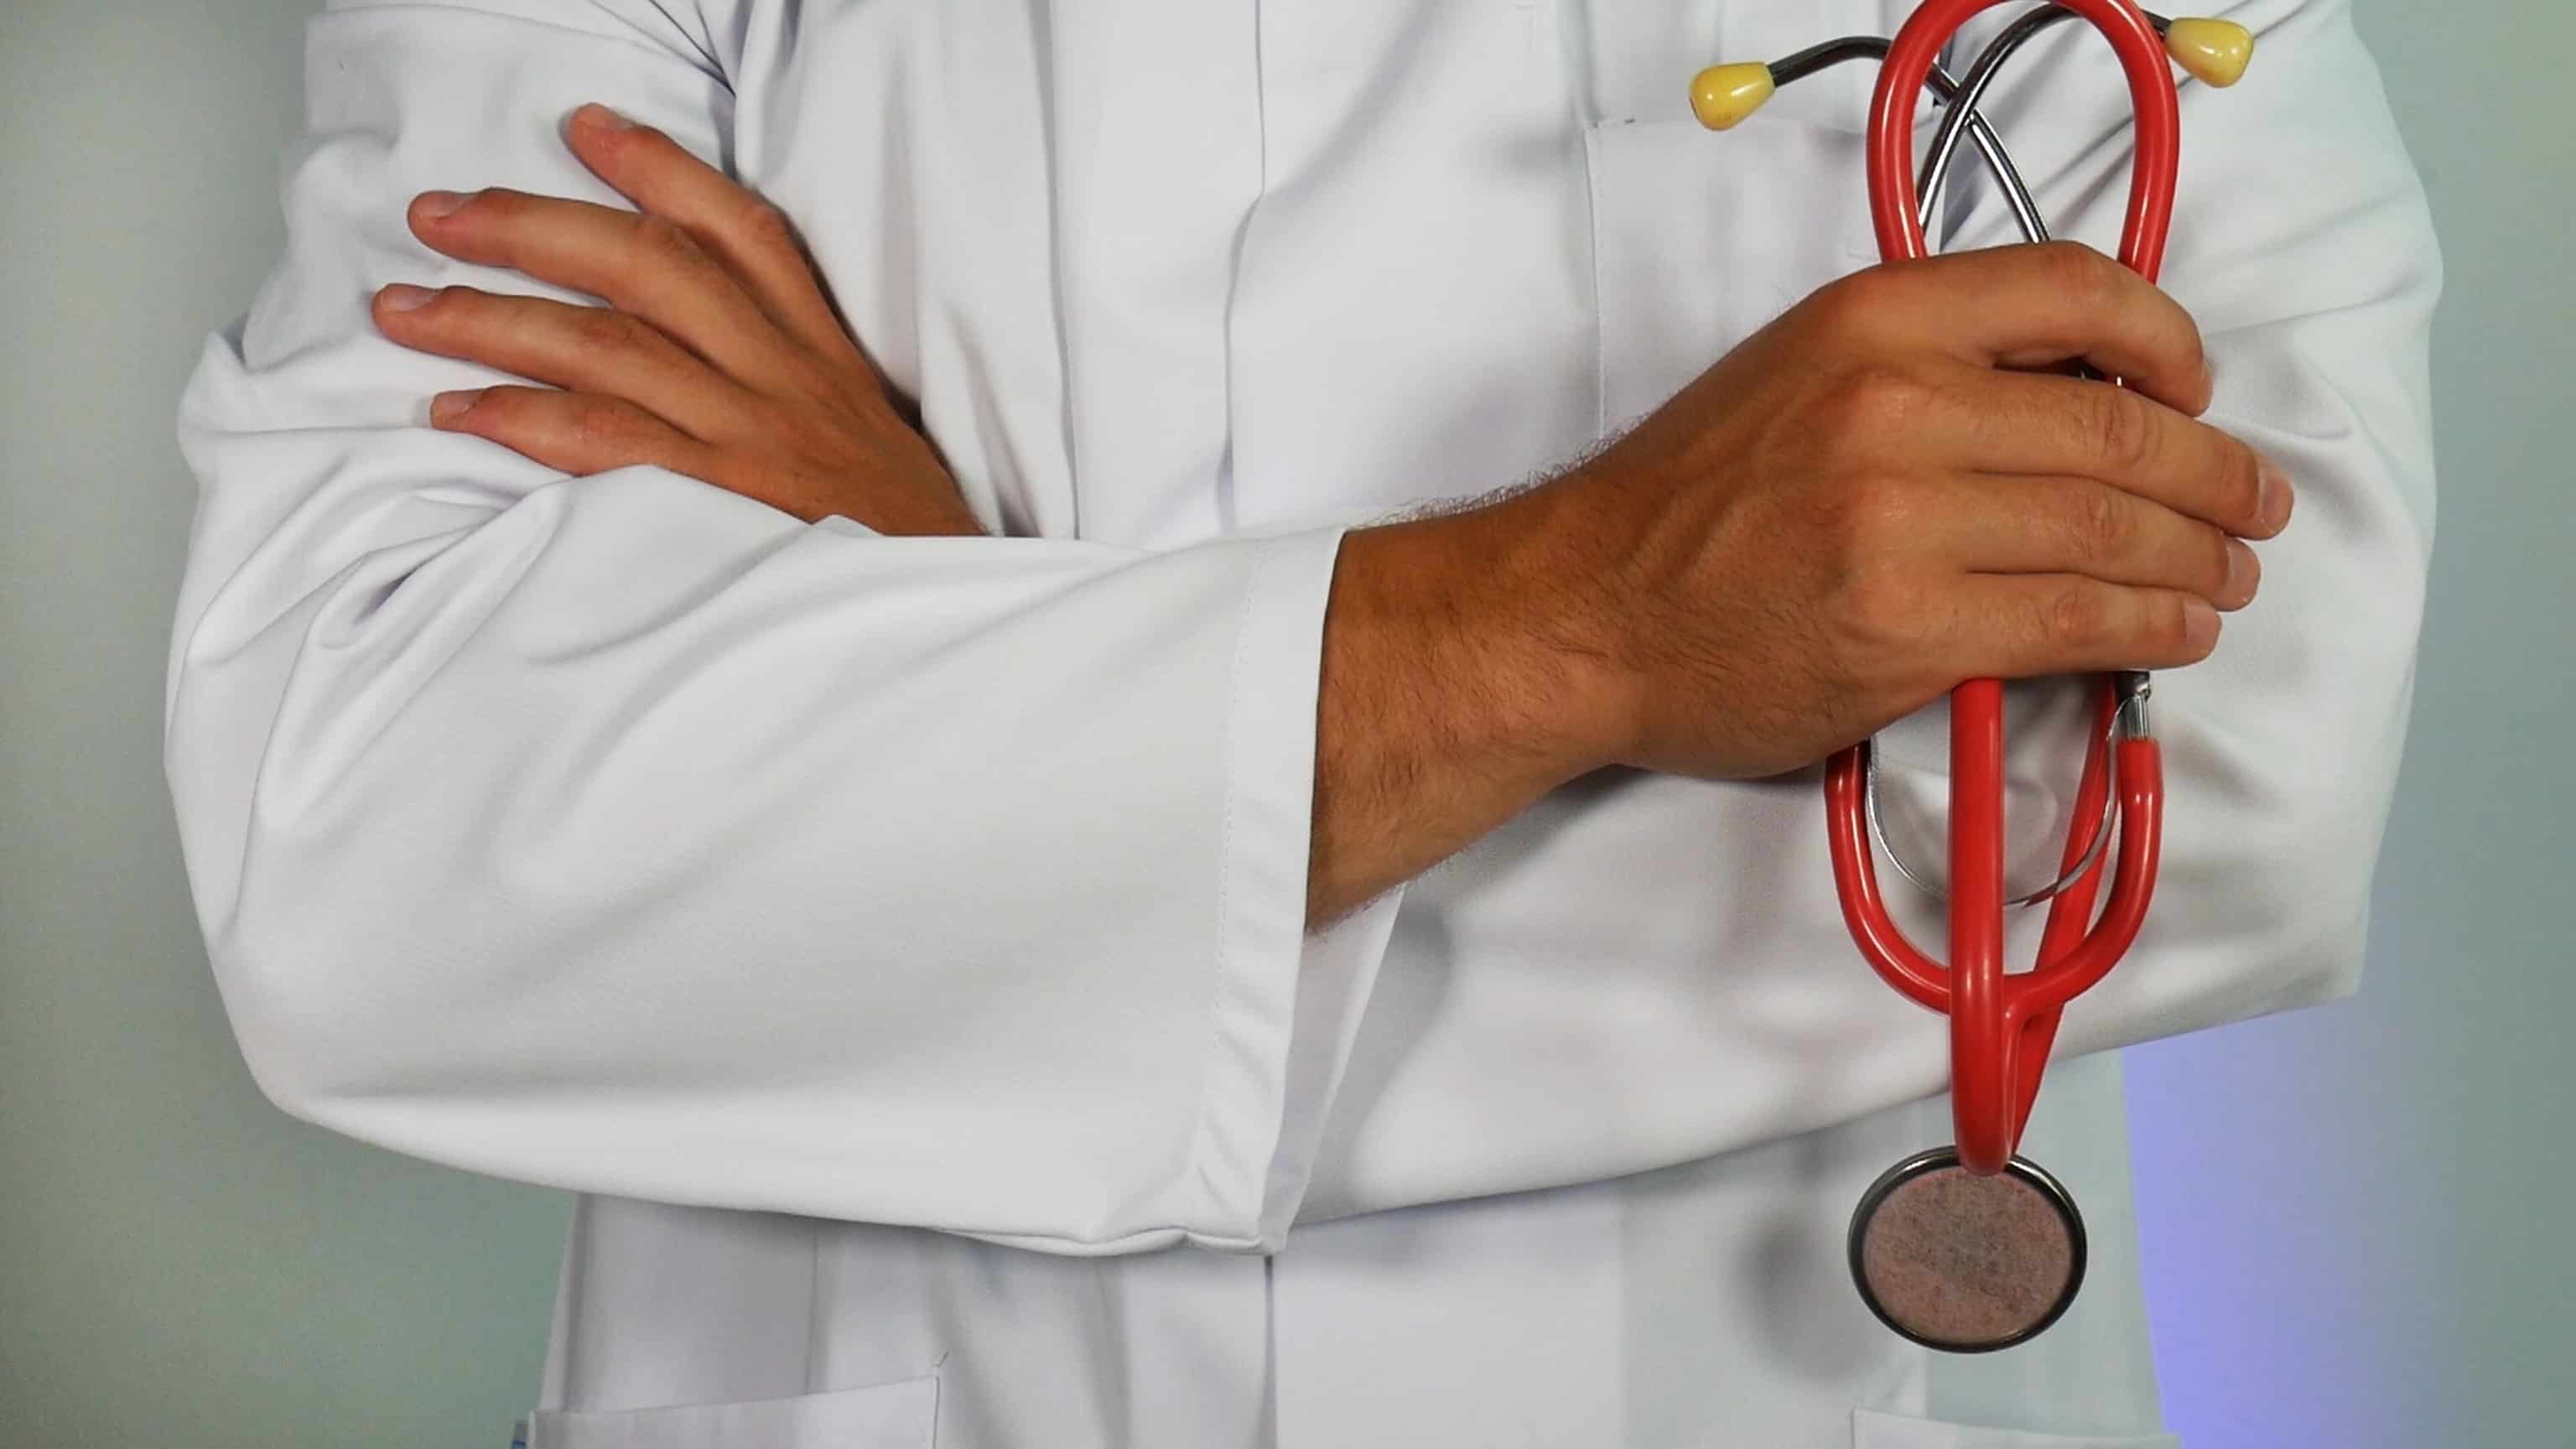 Why Can't My Husband Go to the Doctor to Help Me?